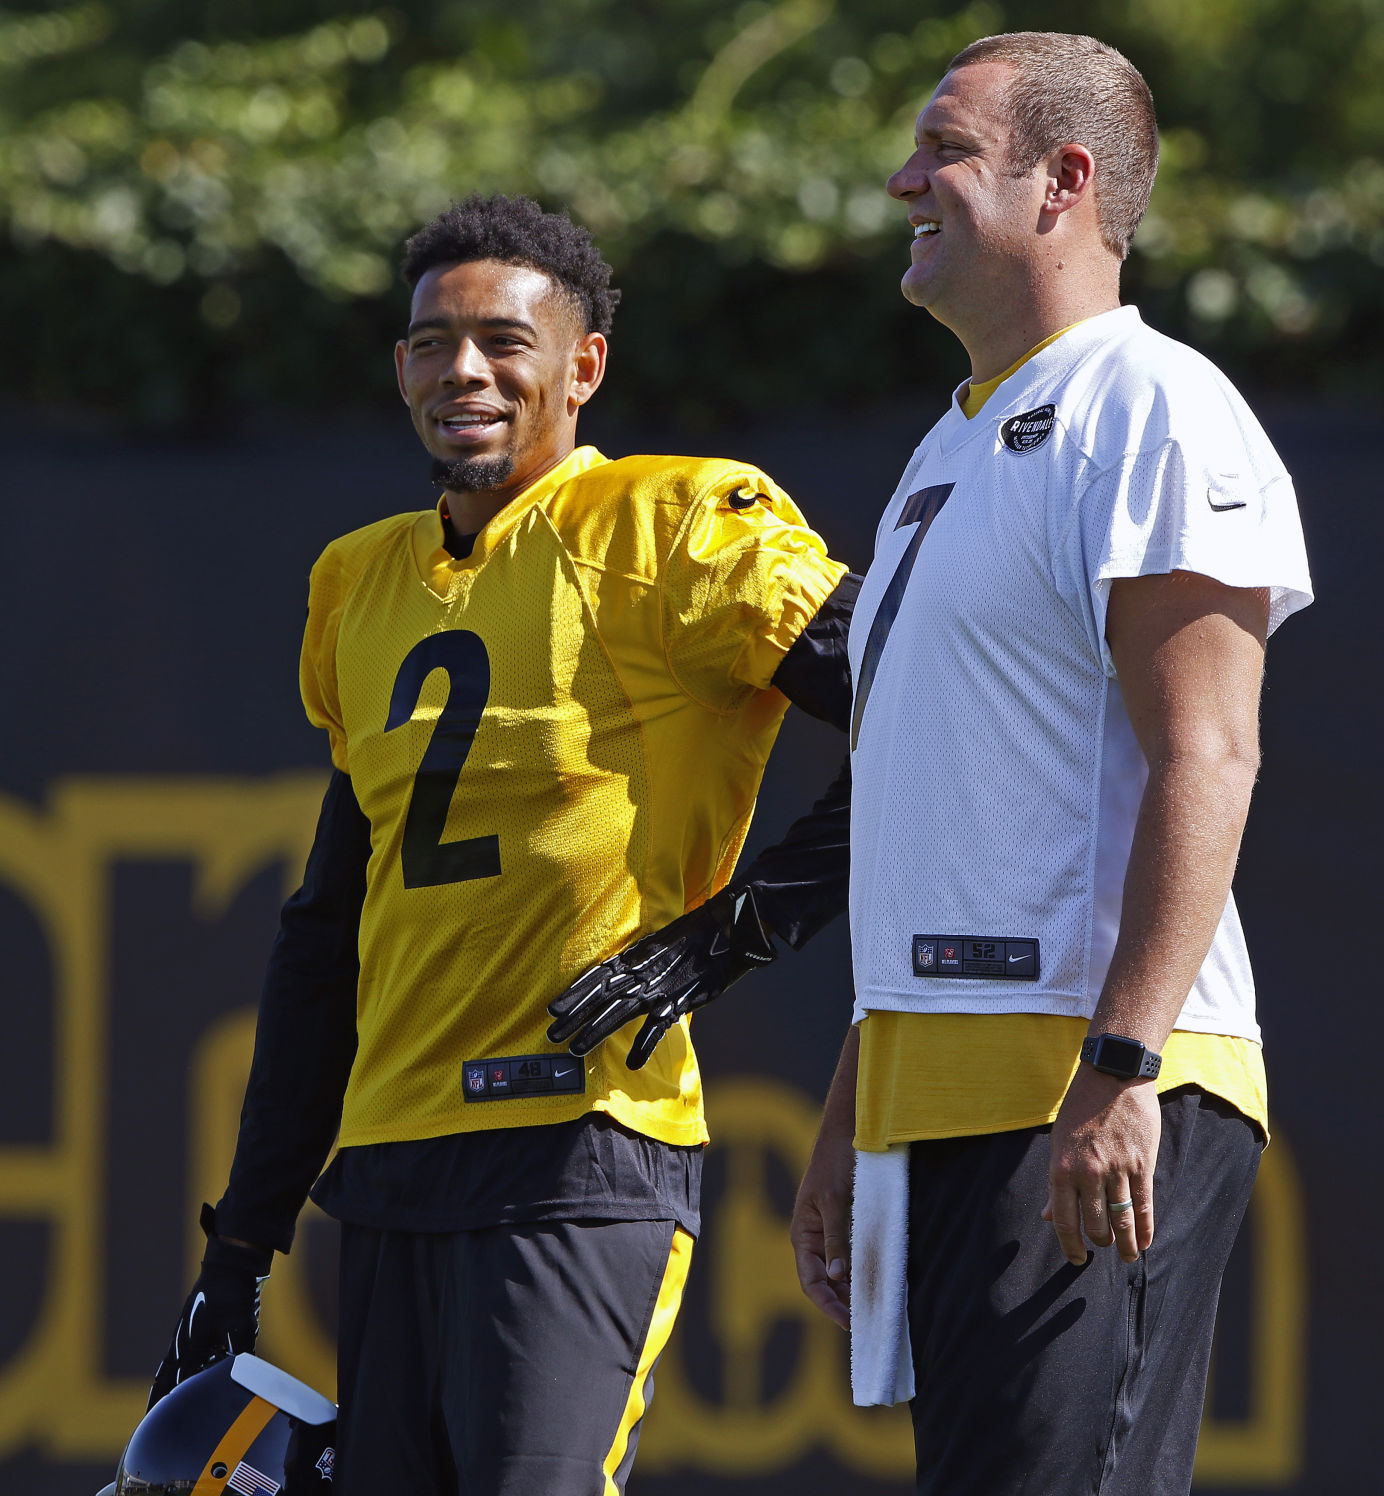 Browns' rookie Kizer set to debut against Big Ben, Steelers